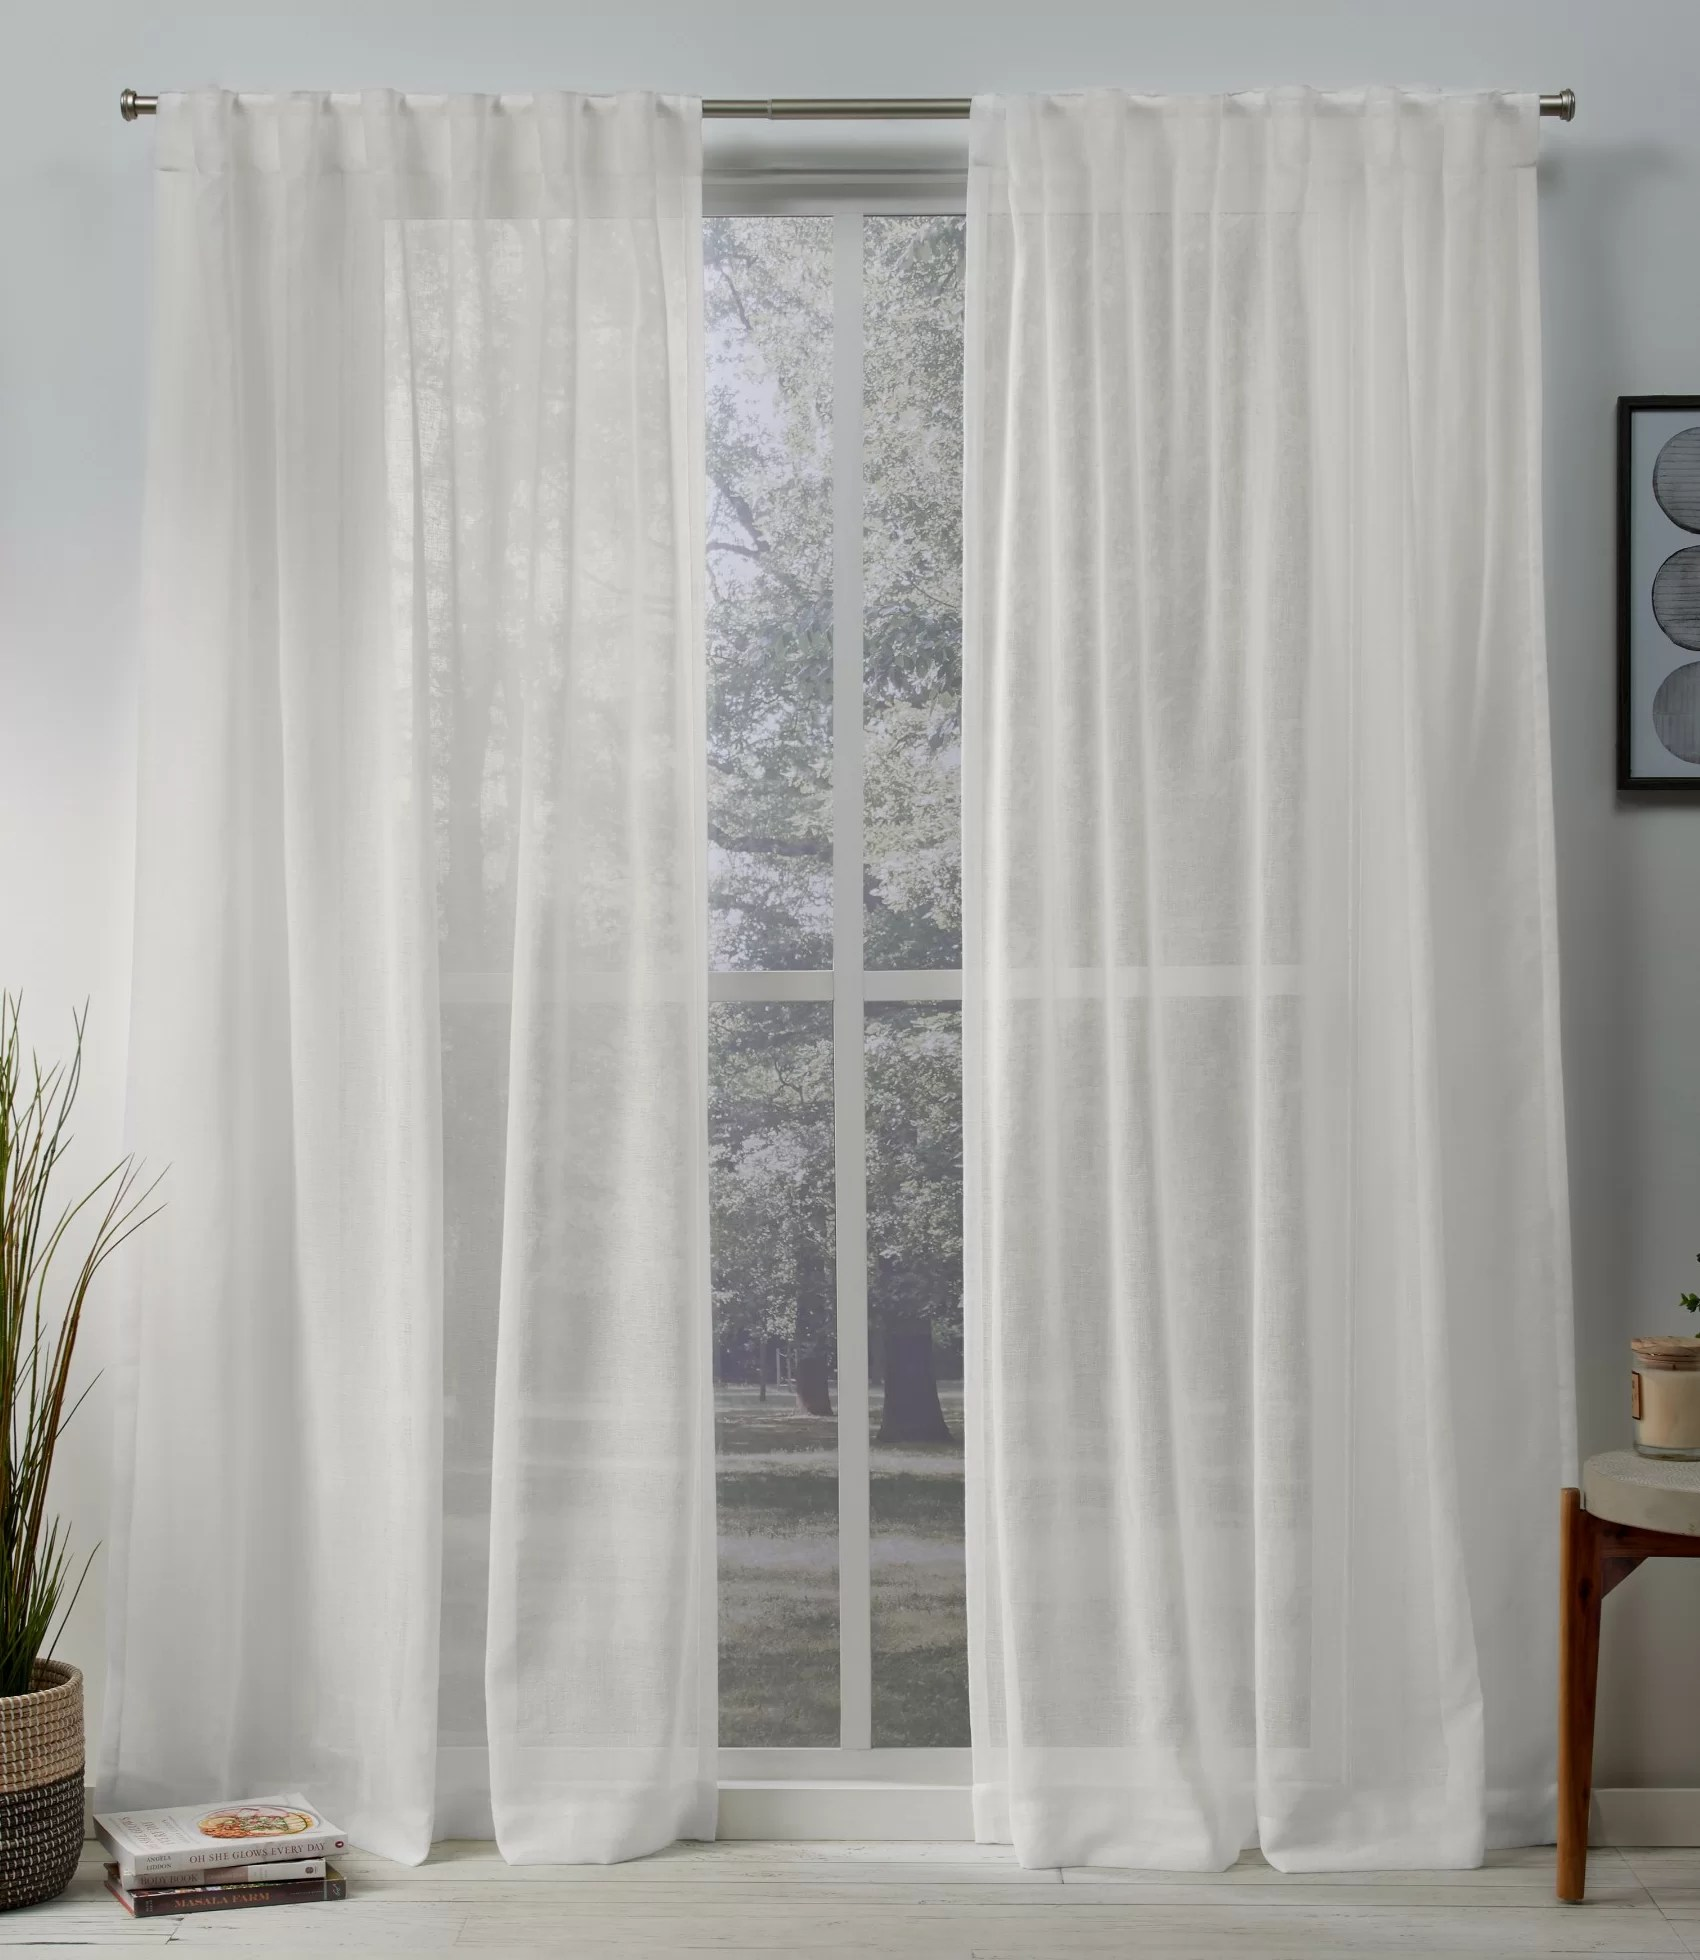 Tab Top Curtain Mirfield Solid Color Sheer Tab Top Curtain Panels